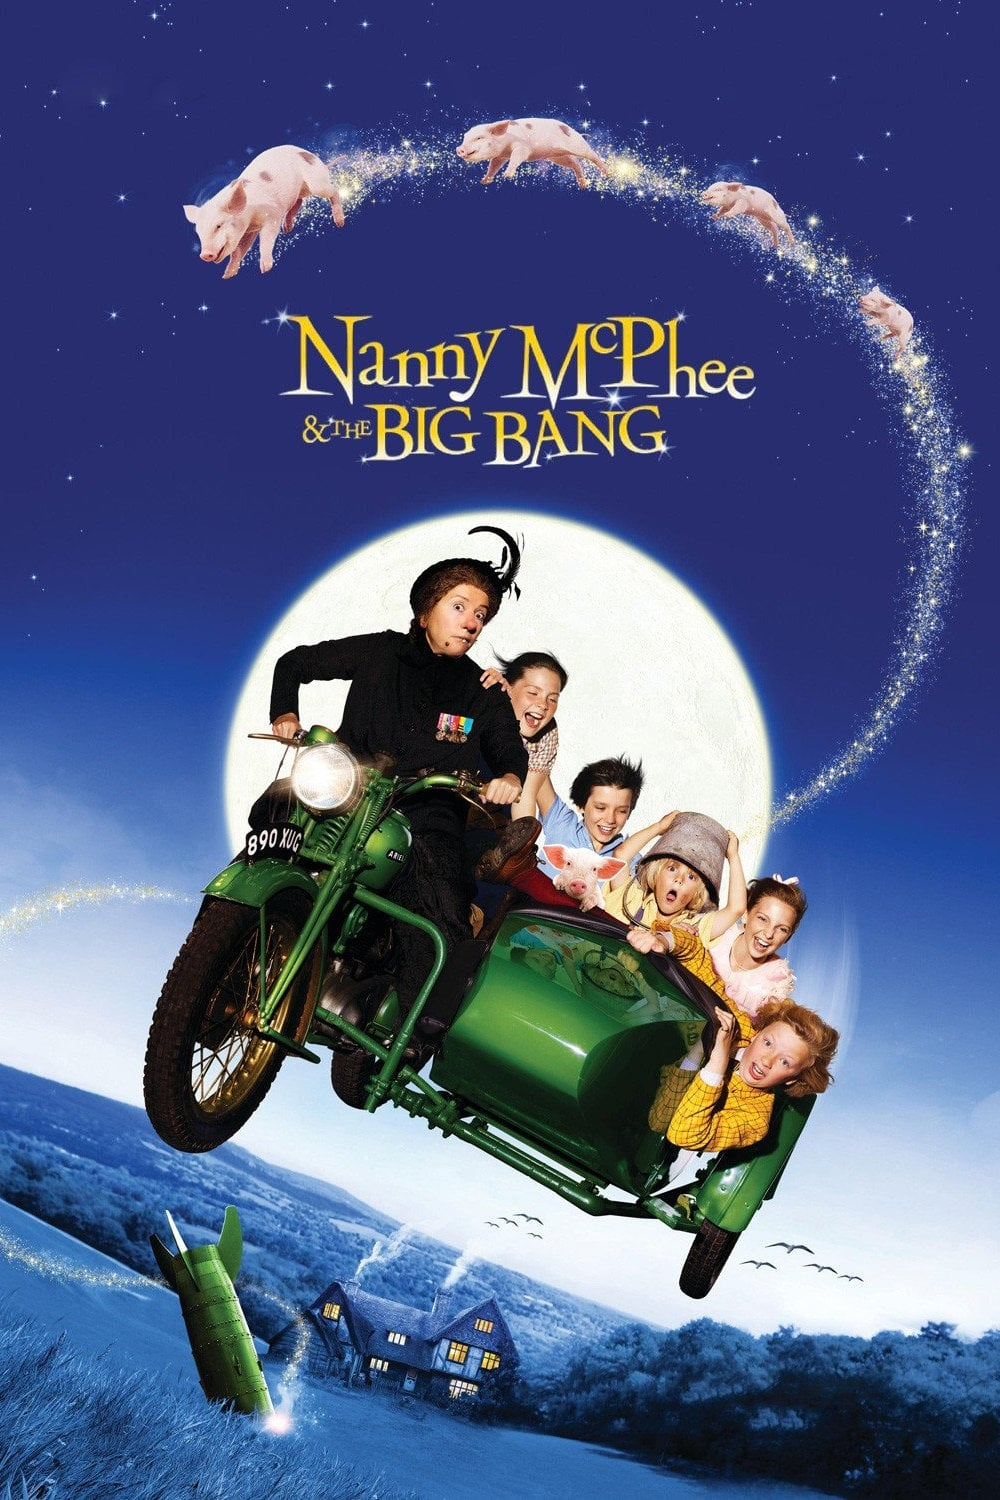 Nanny McPhee and the Big Bang (2010)